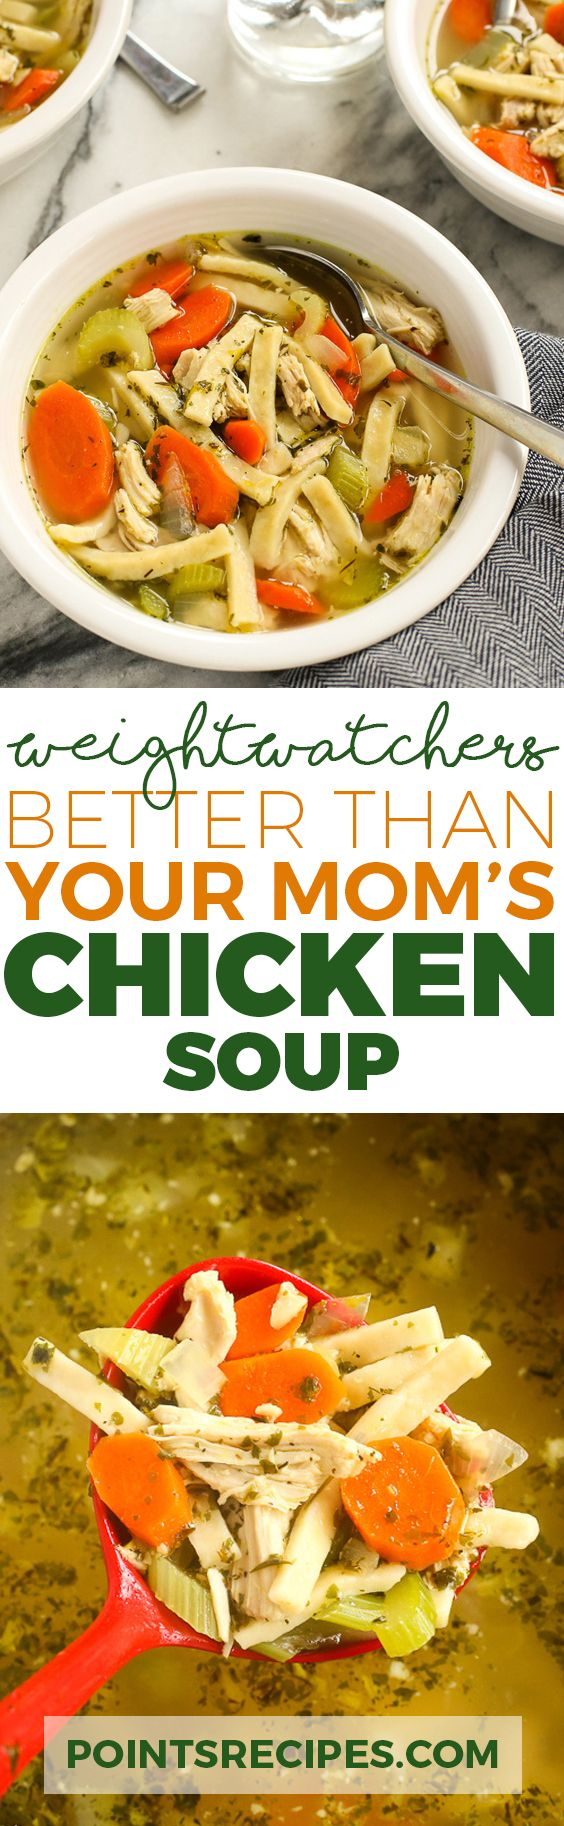 Better than Your Mom's Chicken Soup (Weight Watchers SmartPoints)